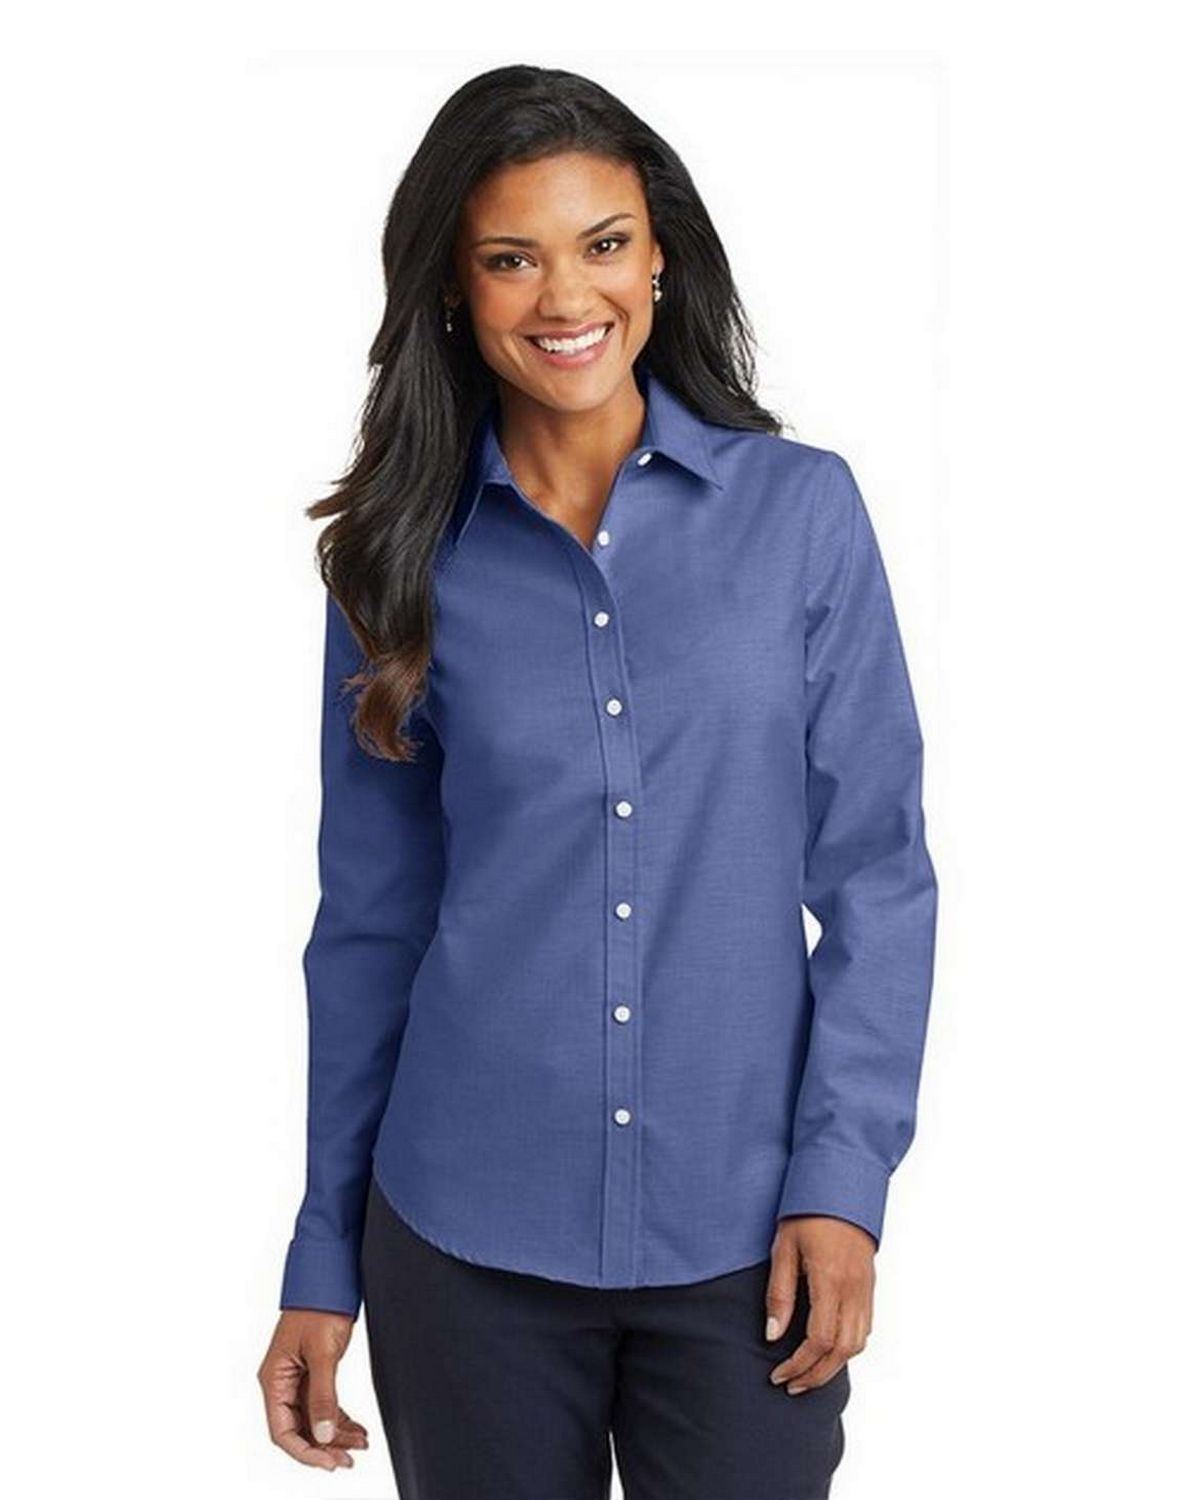 Port Authority L658 Ladies SuperPro Oxford Dress Shirt